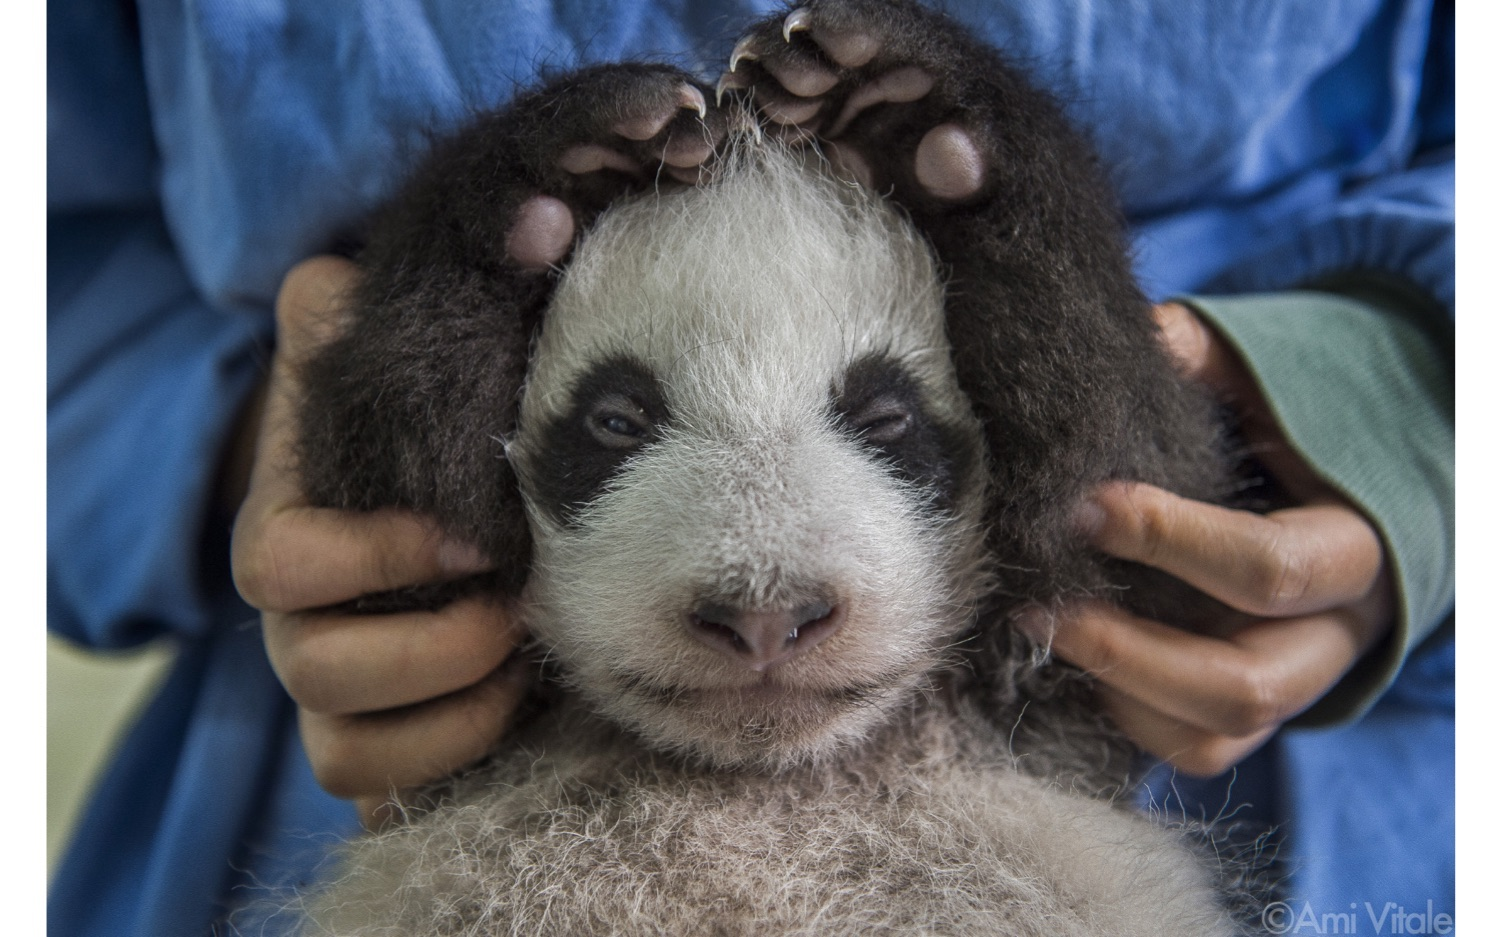 baby panda from the book Panda Love by Ami Vitale